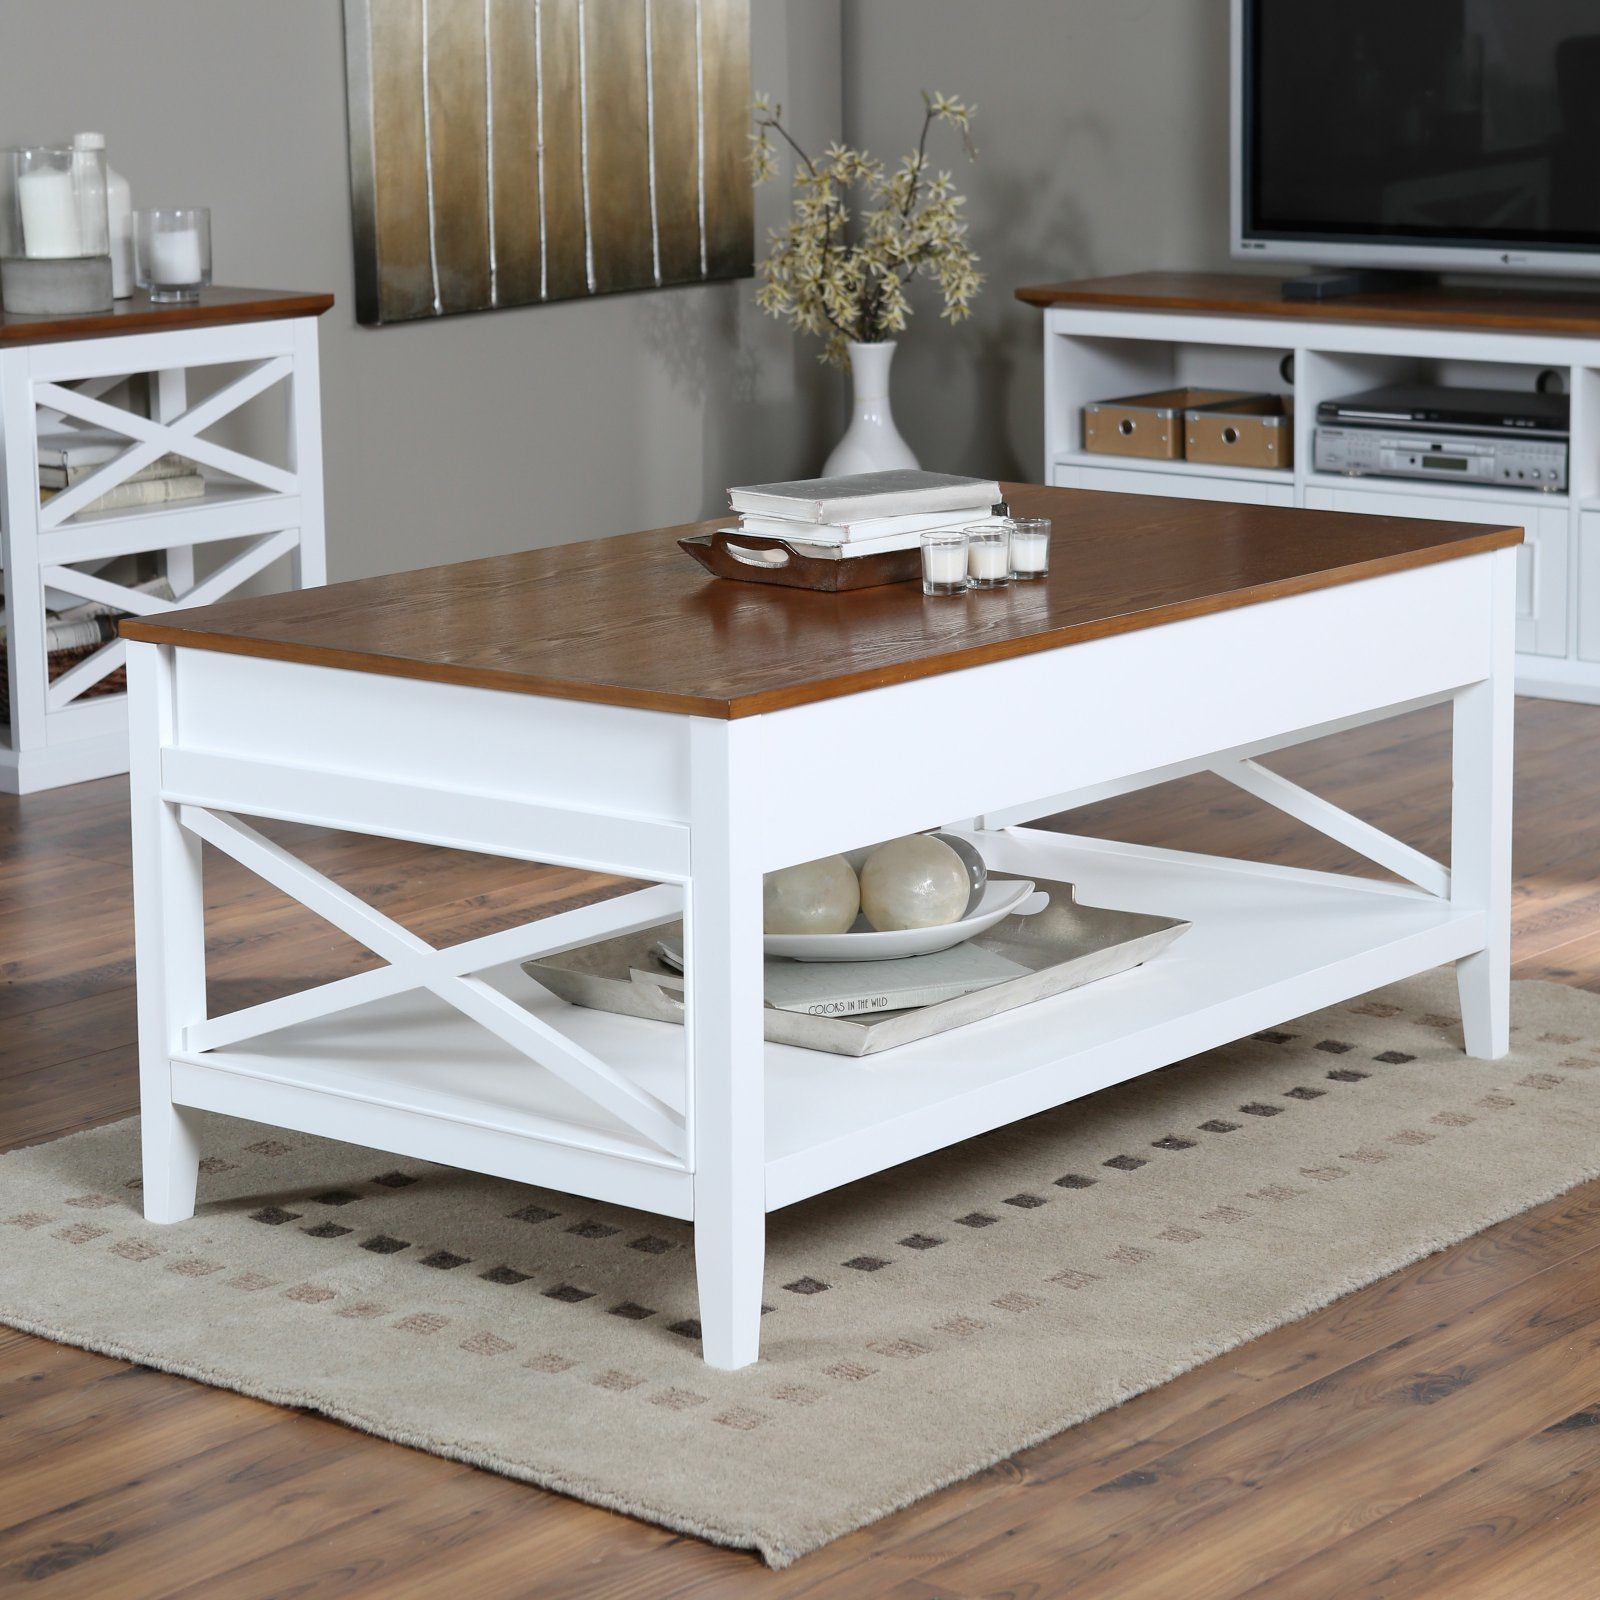 Belham Living Hampton Lift Top Coffee Table   White/Oak